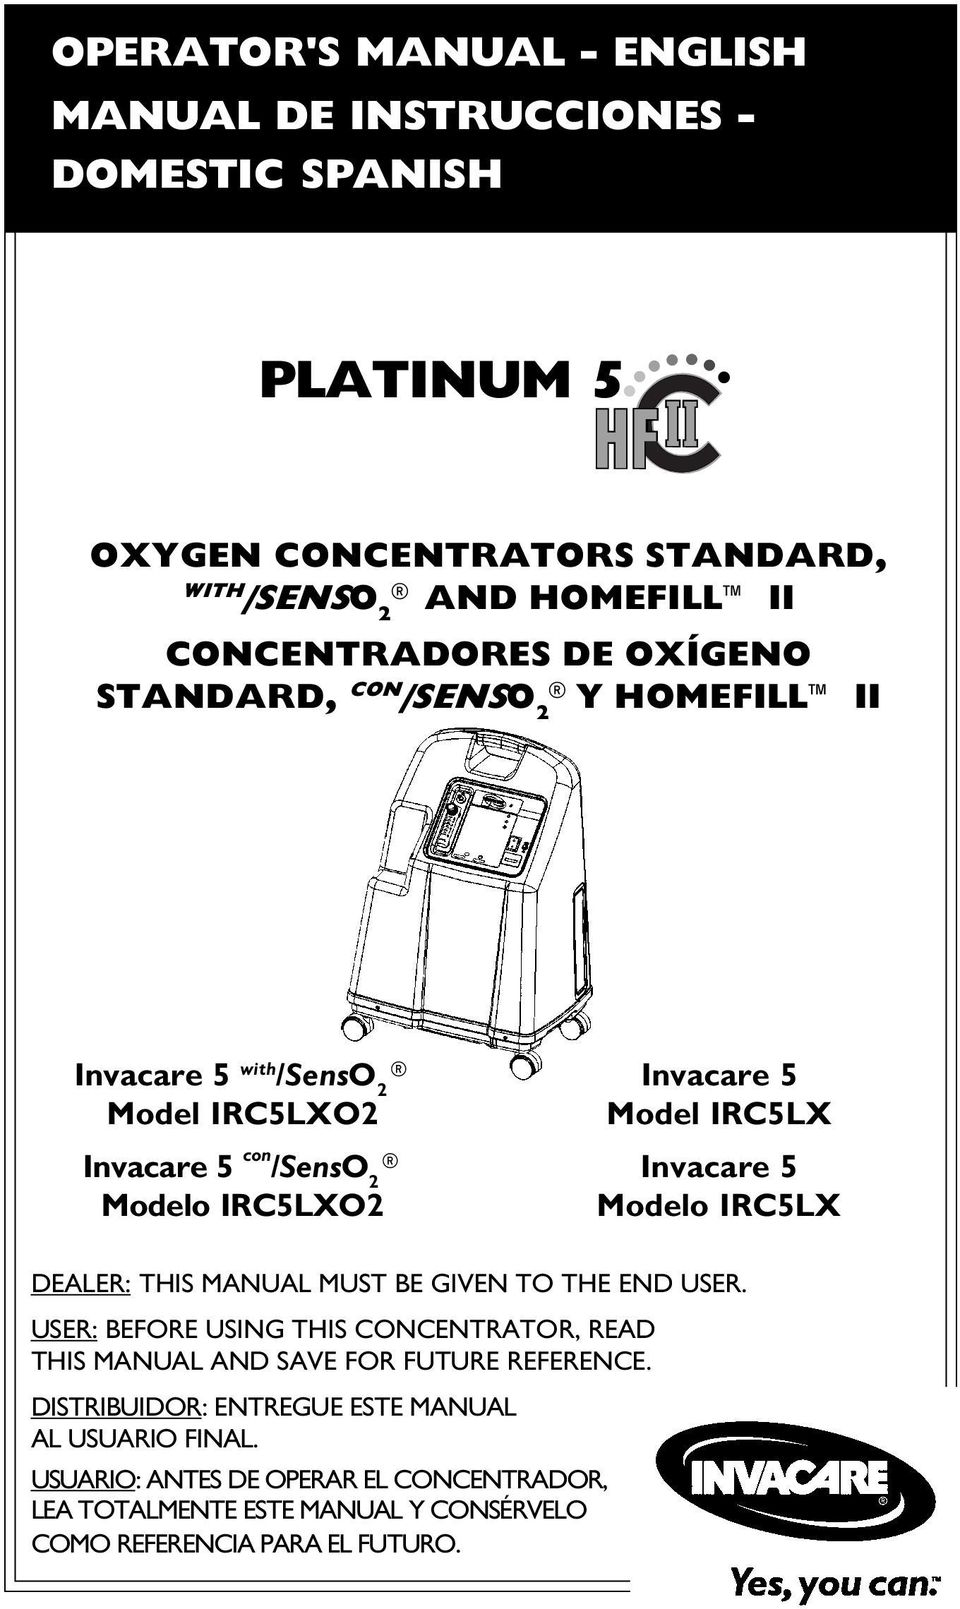 Invacare 5 Modelo IRC5LX DEALER: THIS MANUAL MUST BE GIVEN TO THE END USER.